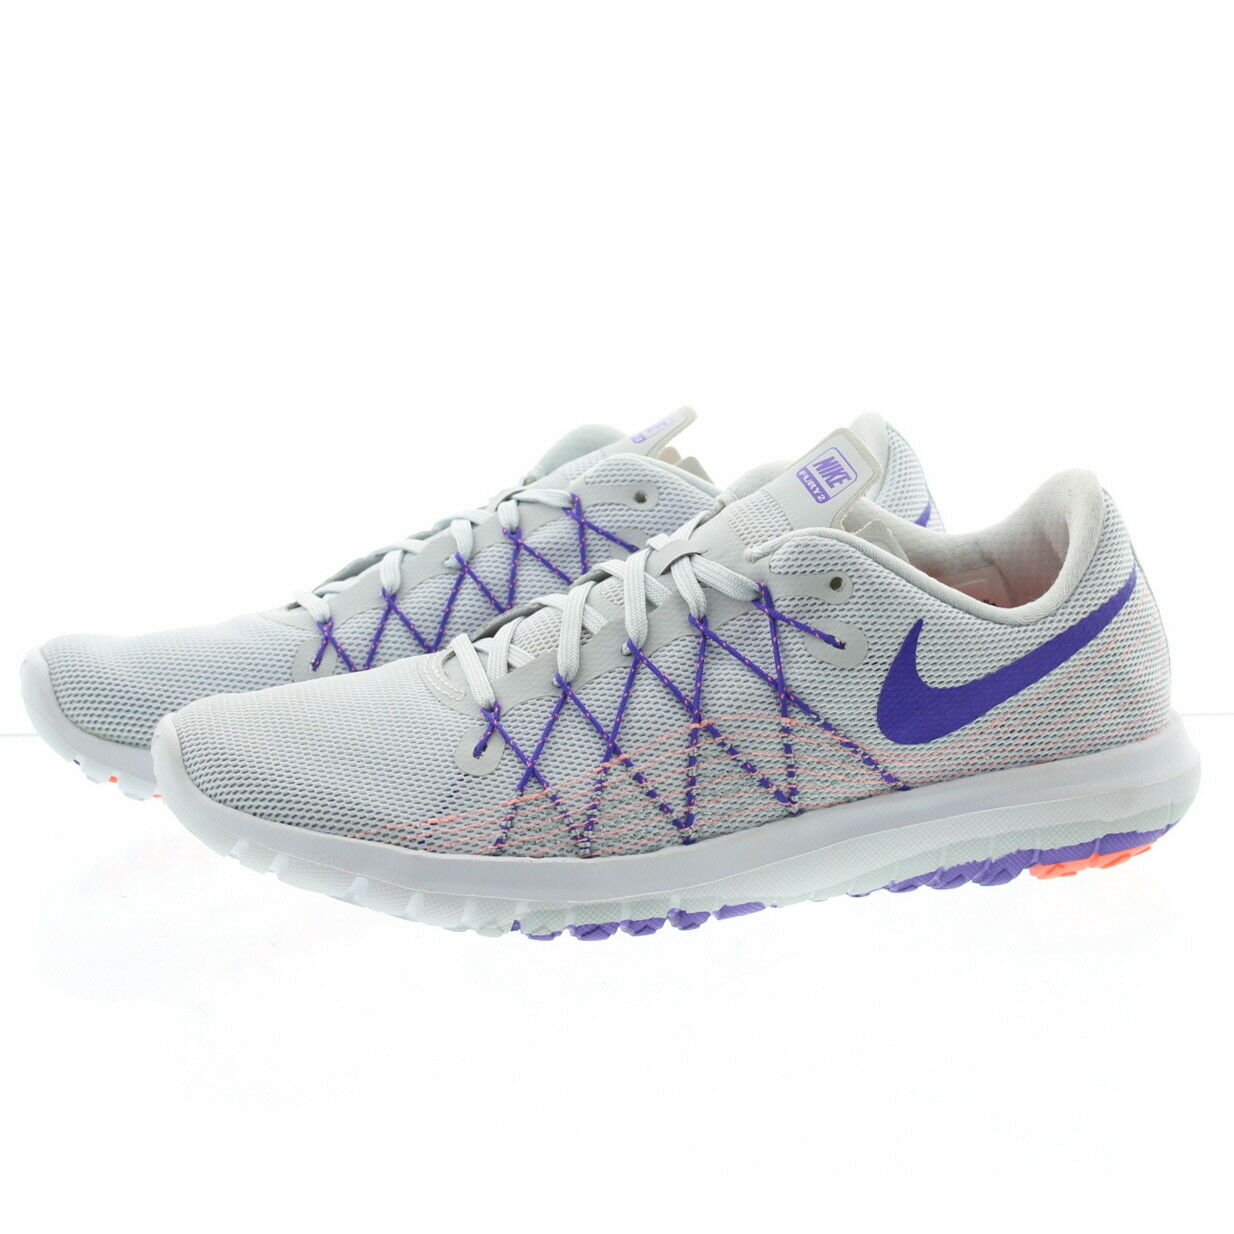 Nike 819135 Womens Flex Fury 2 Low Top Running Athletic Athletic Athletic shoes Sneakers d0777a